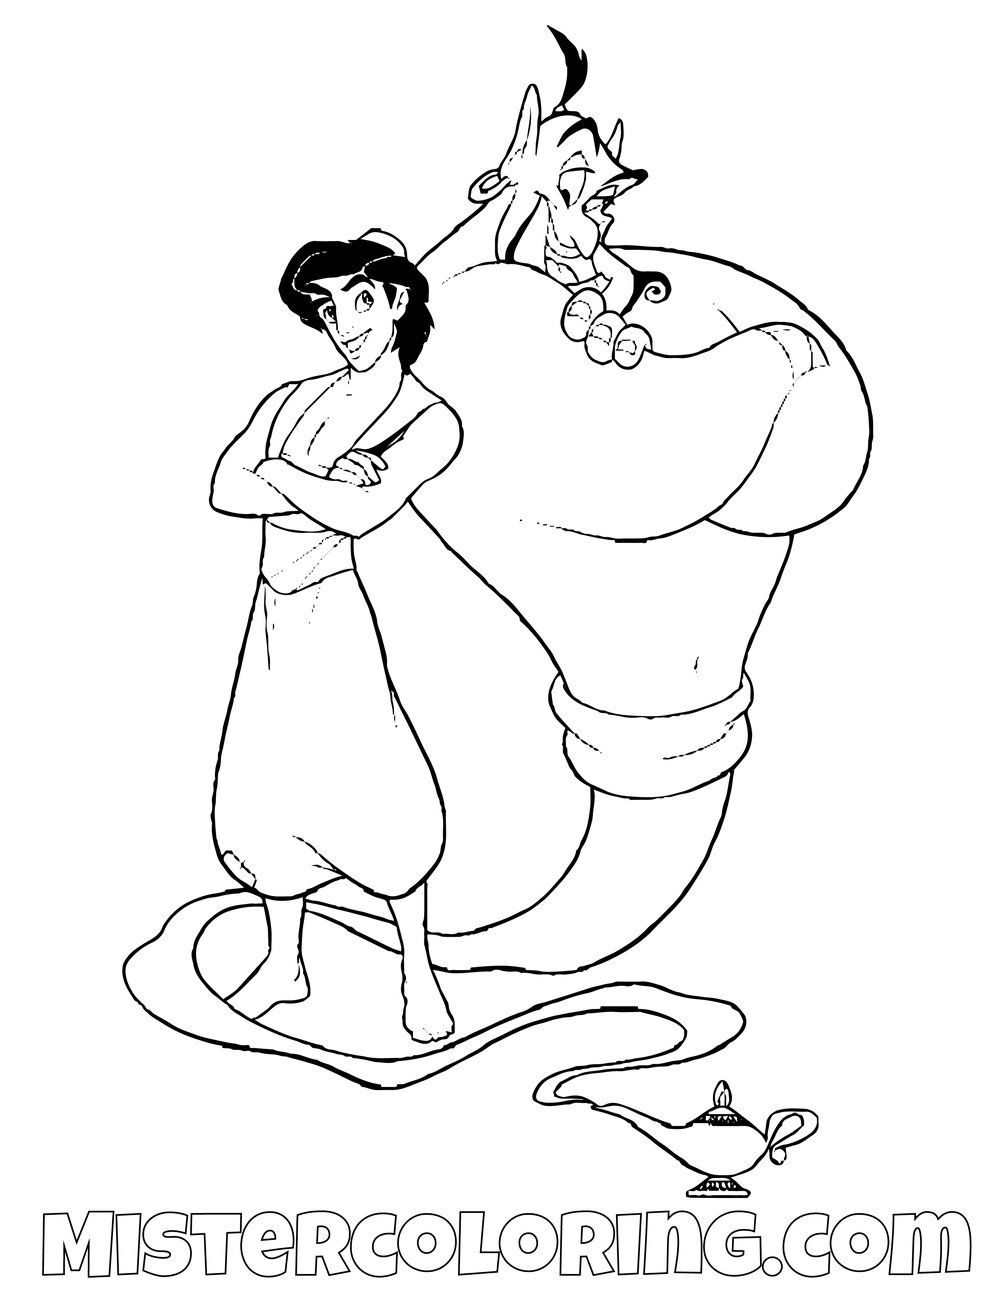 Aladdin And Genie Aladdin Coloring Page For Kids Coloring Pages